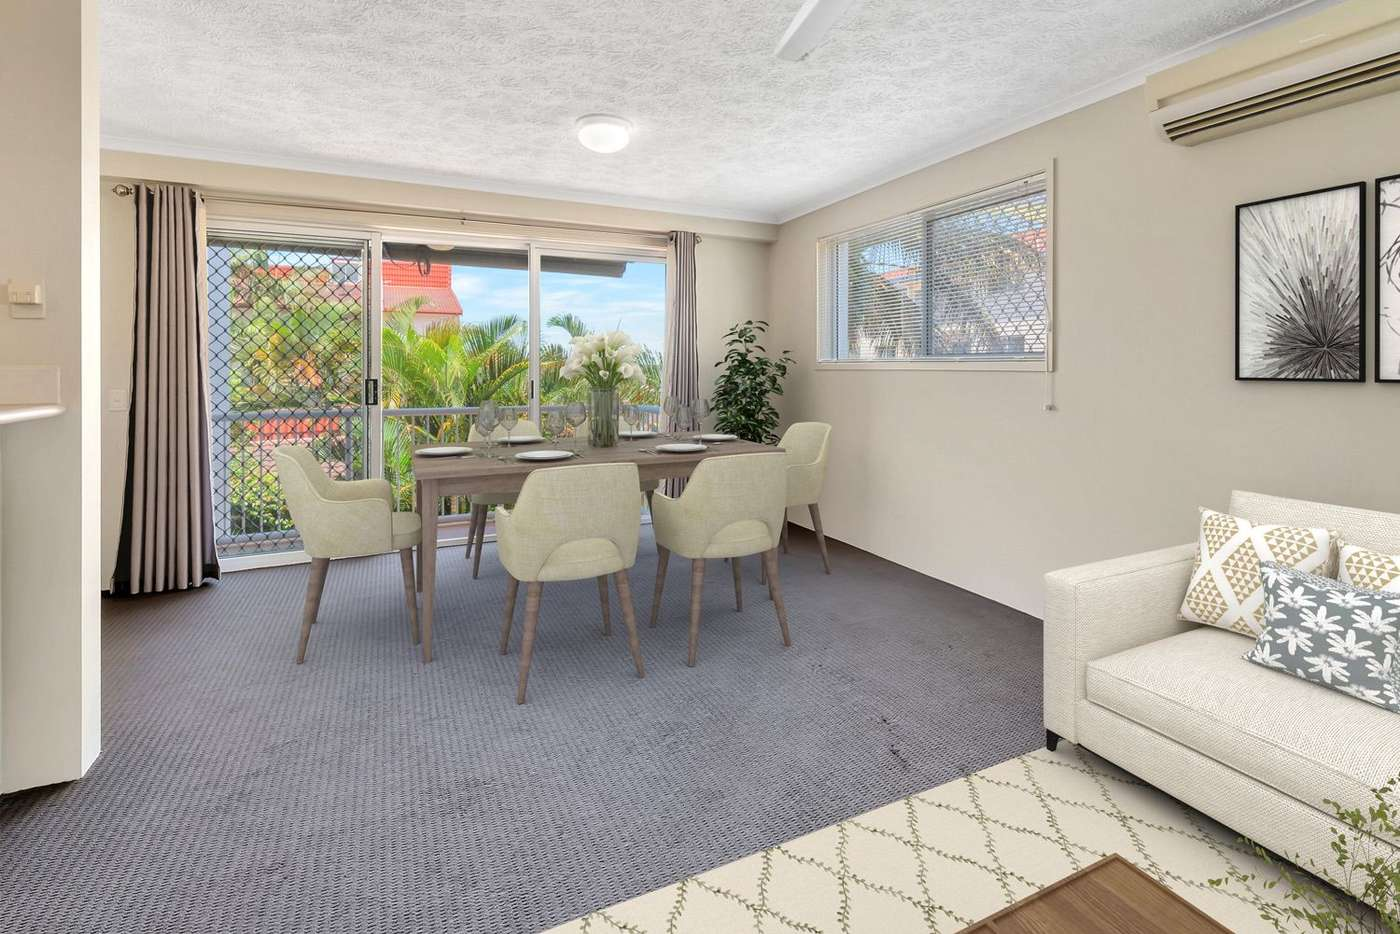 Main view of Homely apartment listing, 33/12 Whiting Street, Labrador QLD 4215